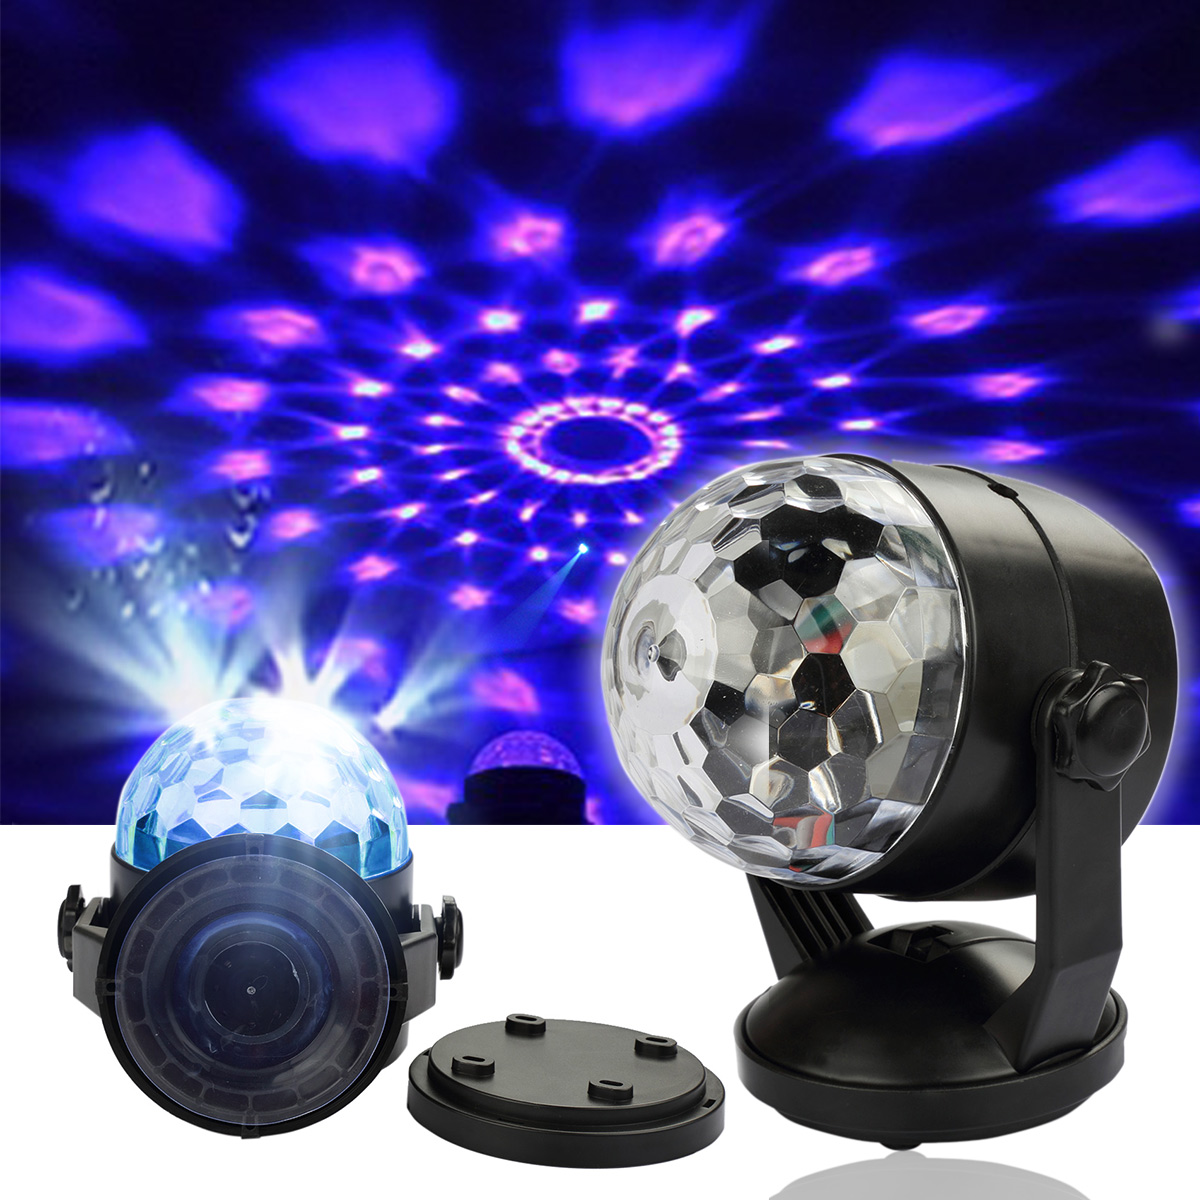 Besmall 3W Mini RGB LED Crystal Magic Ball Stage Lighting Effect Lamp Bulb Party Disco Club DJ Light for Halloween... by Besmall